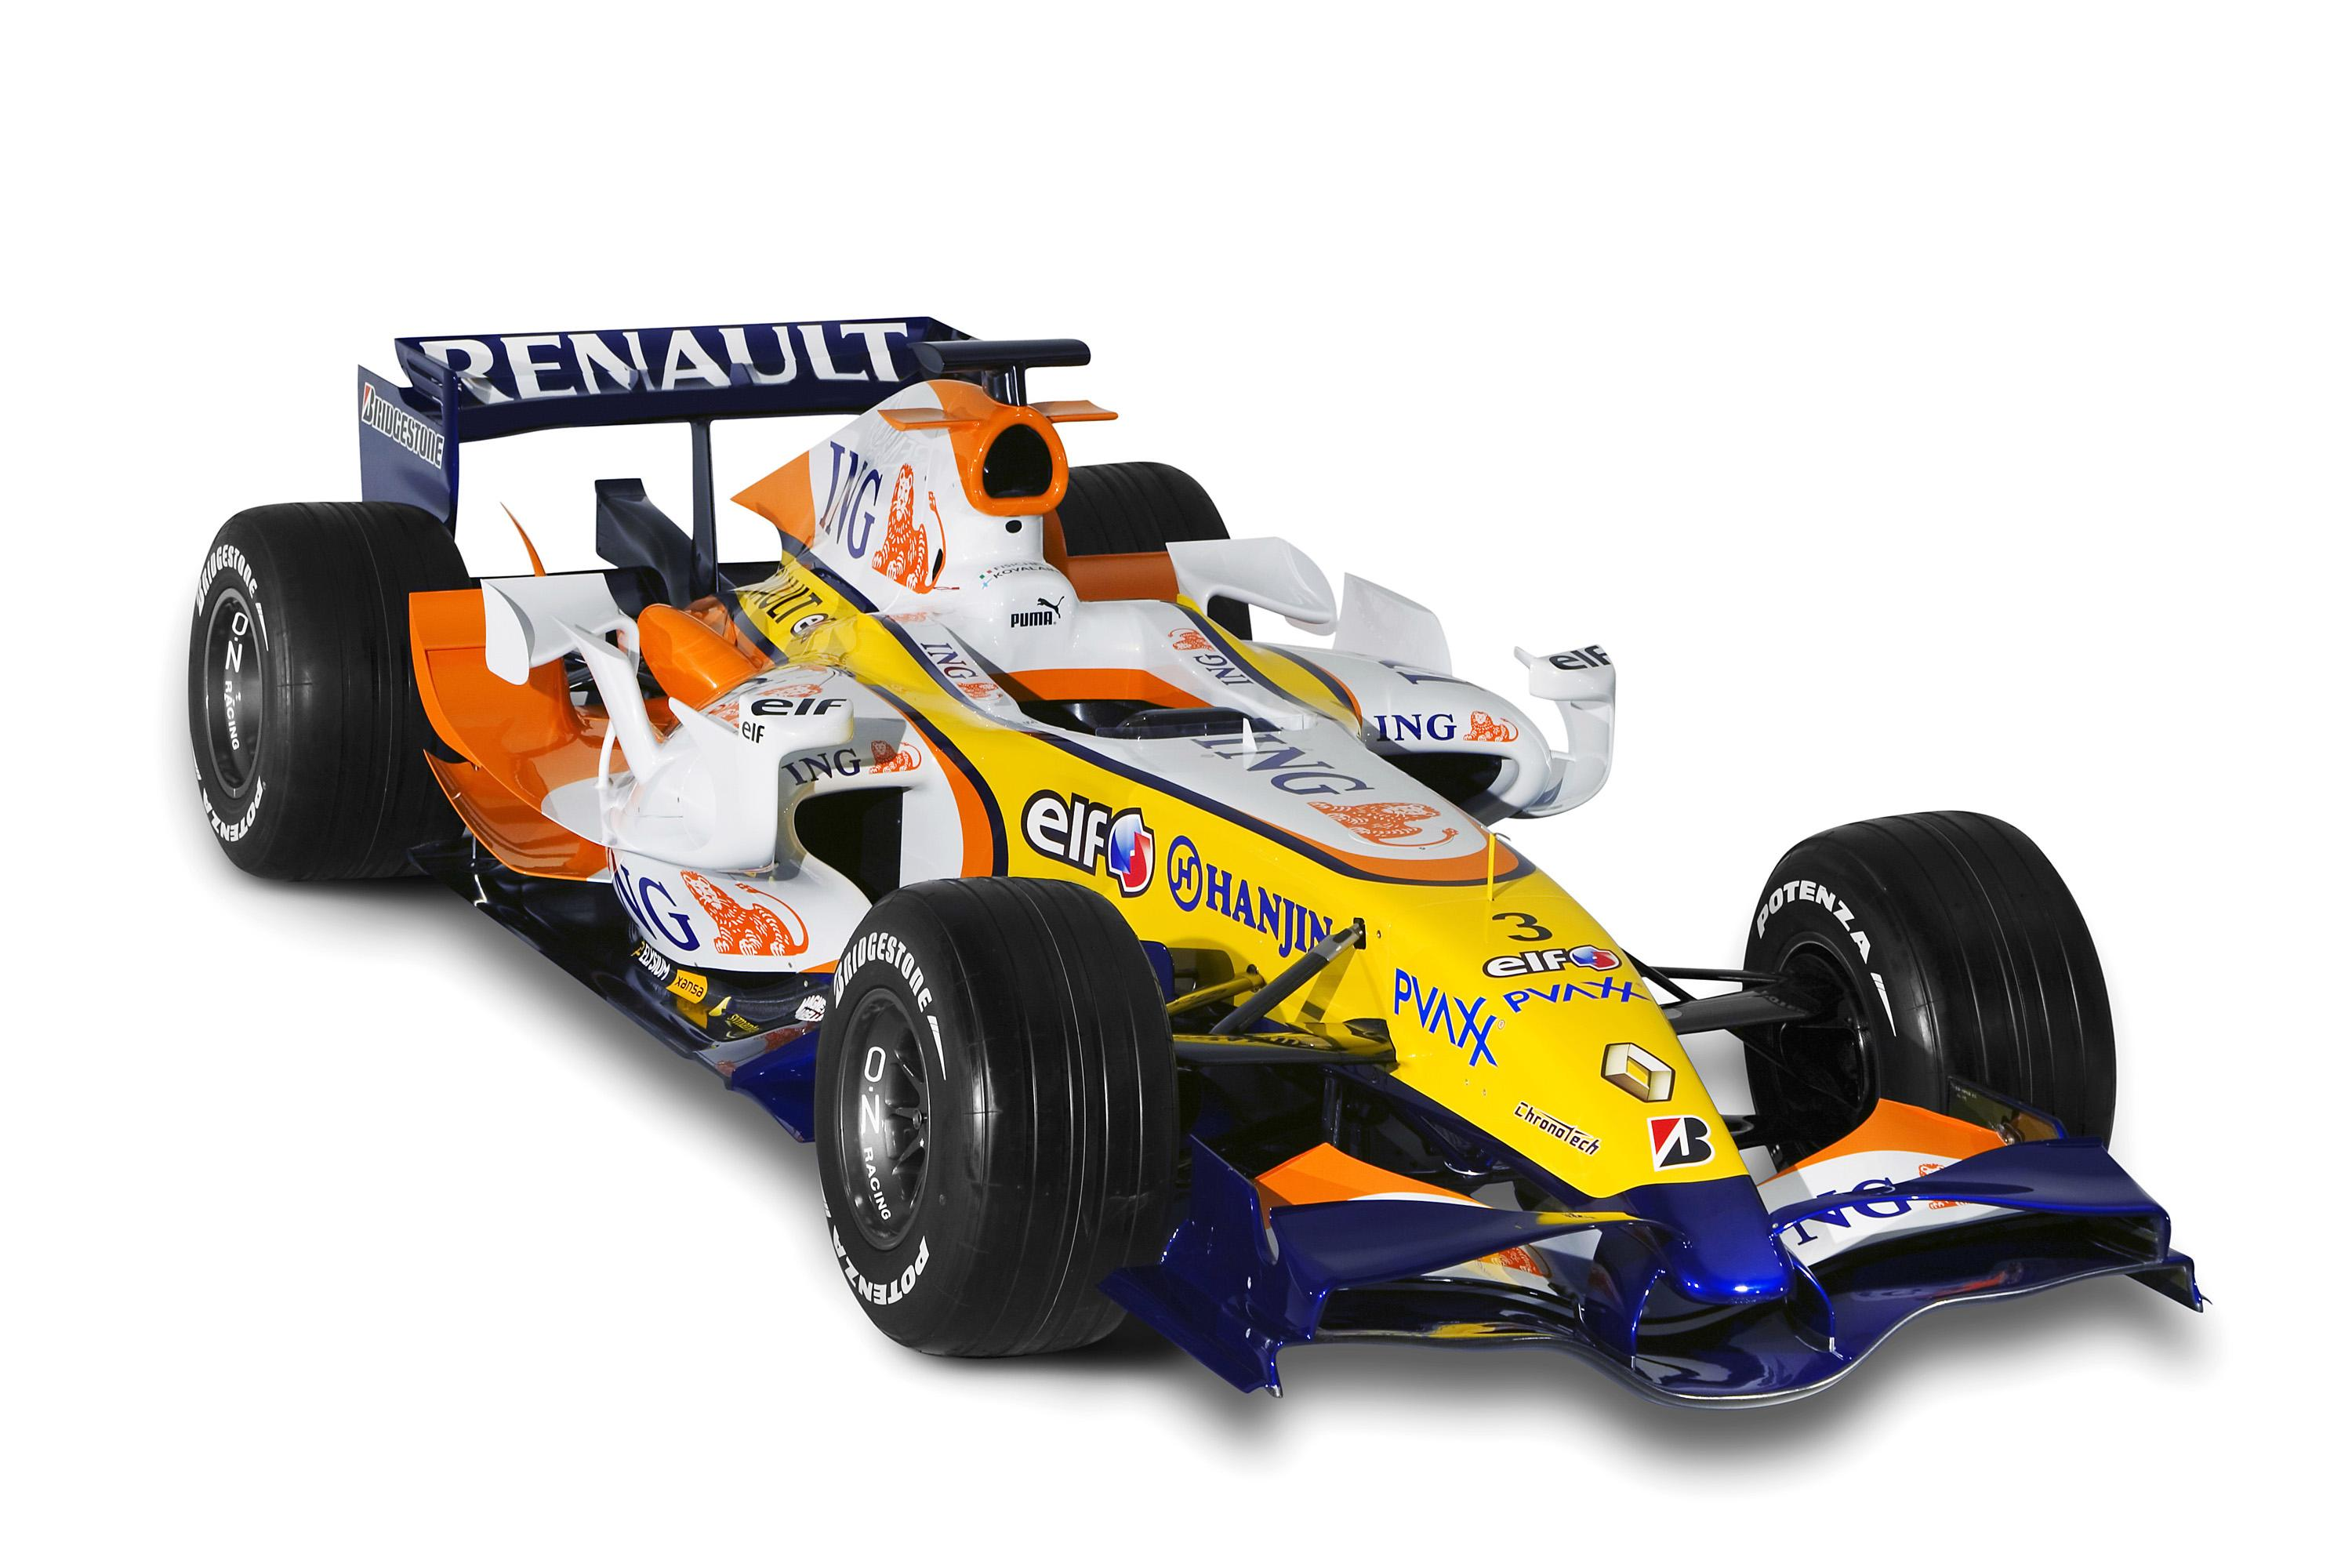 Renault R27 photo 48754